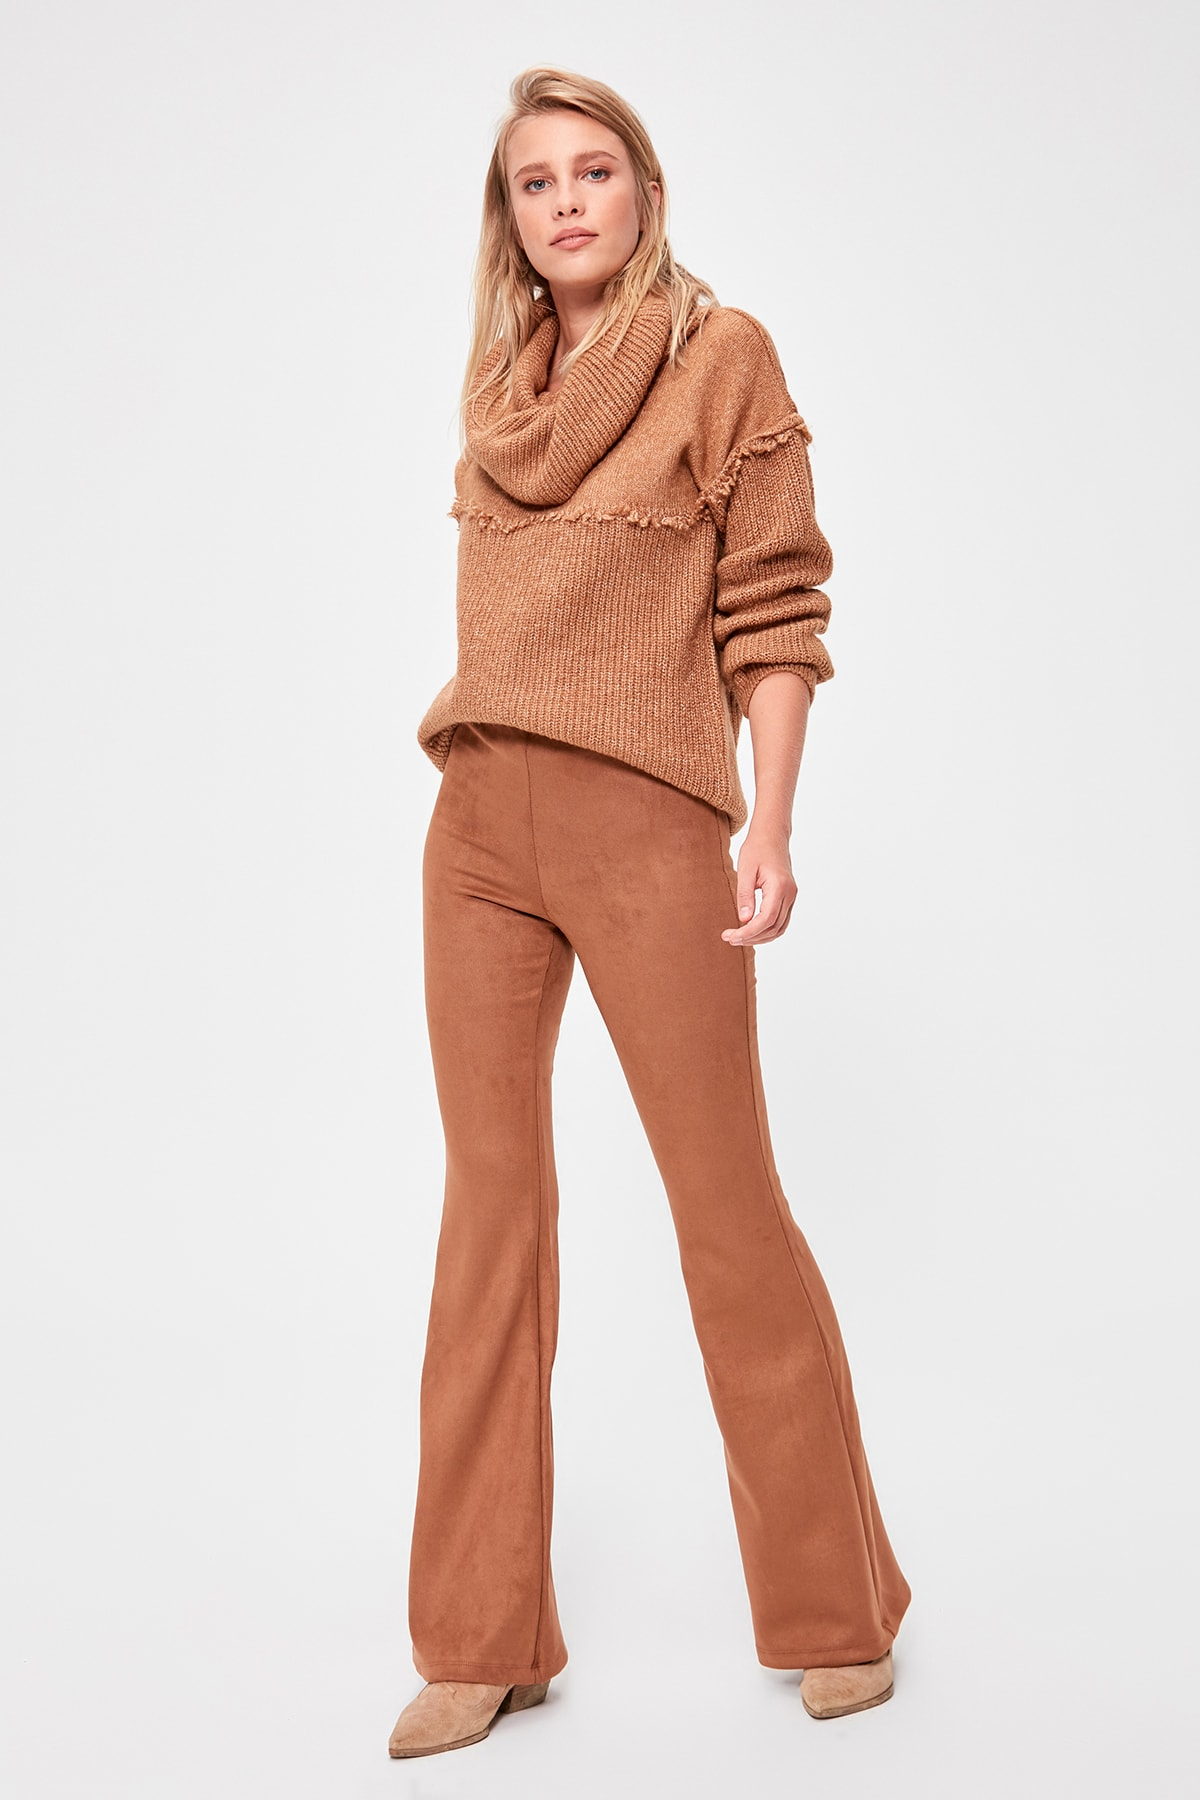 Trendyol Suede Spanish Bell-Bottomed Pants TWOAW20PL0304